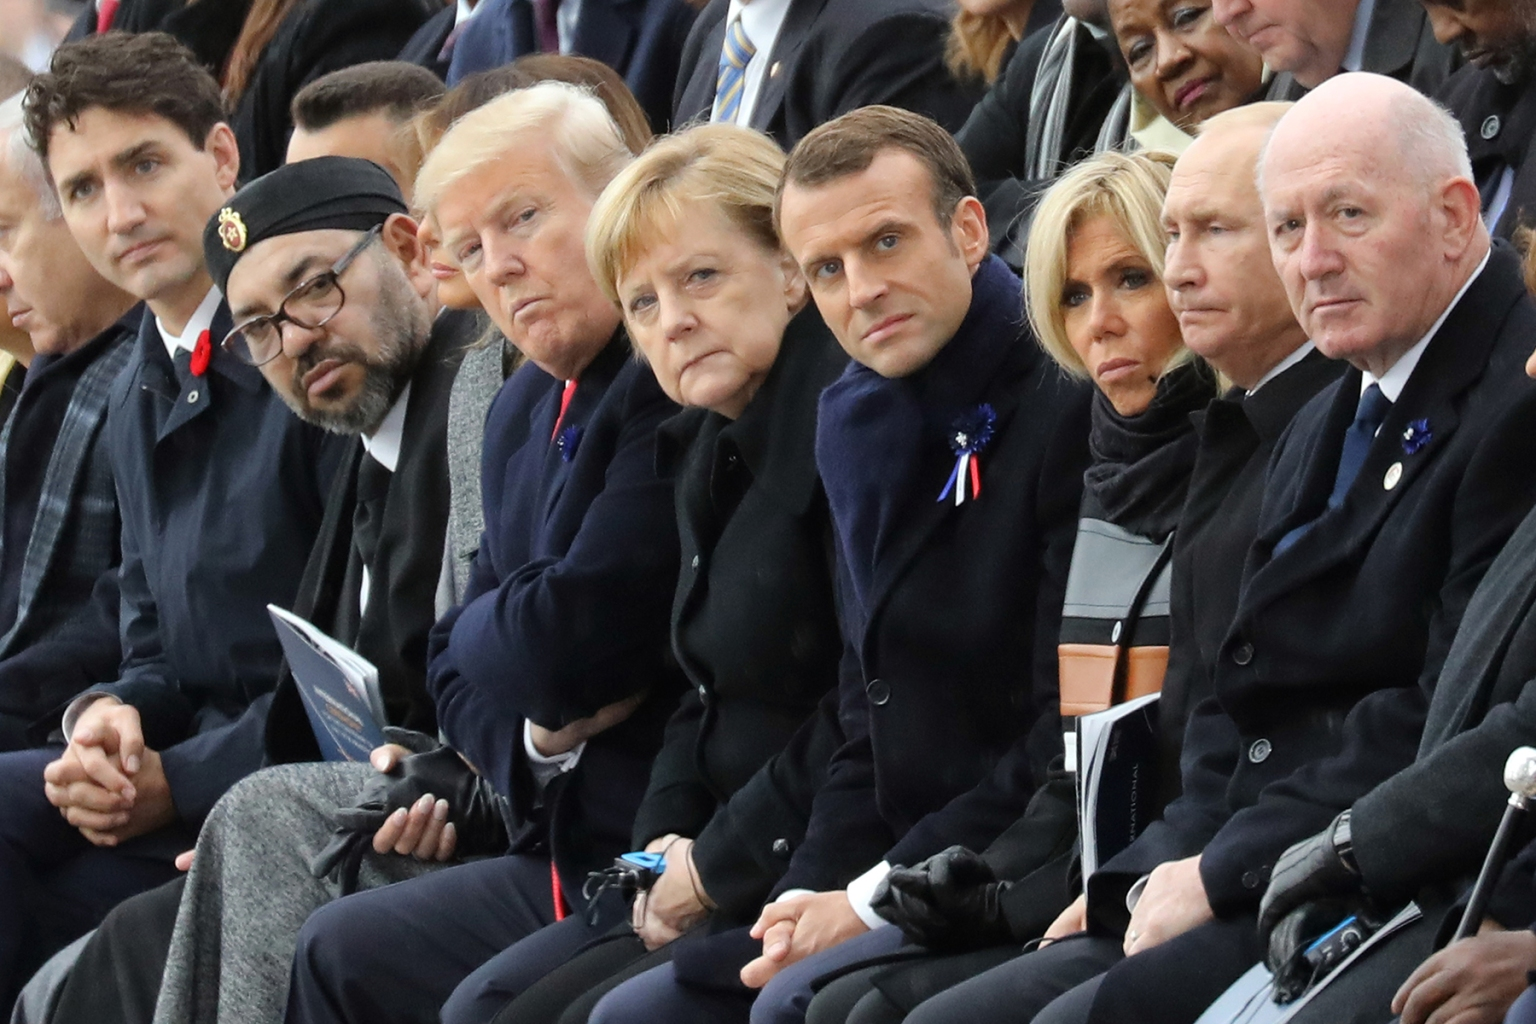 World leaders attend a ceremony at the Arc de Triomphe in Paris on Nov. 11 as part of commemorations marking the 100th anniversary of the Nov. 11, 1918, armistice, ending World War I. LUDOVIC MARIN/AFP/Getty Images